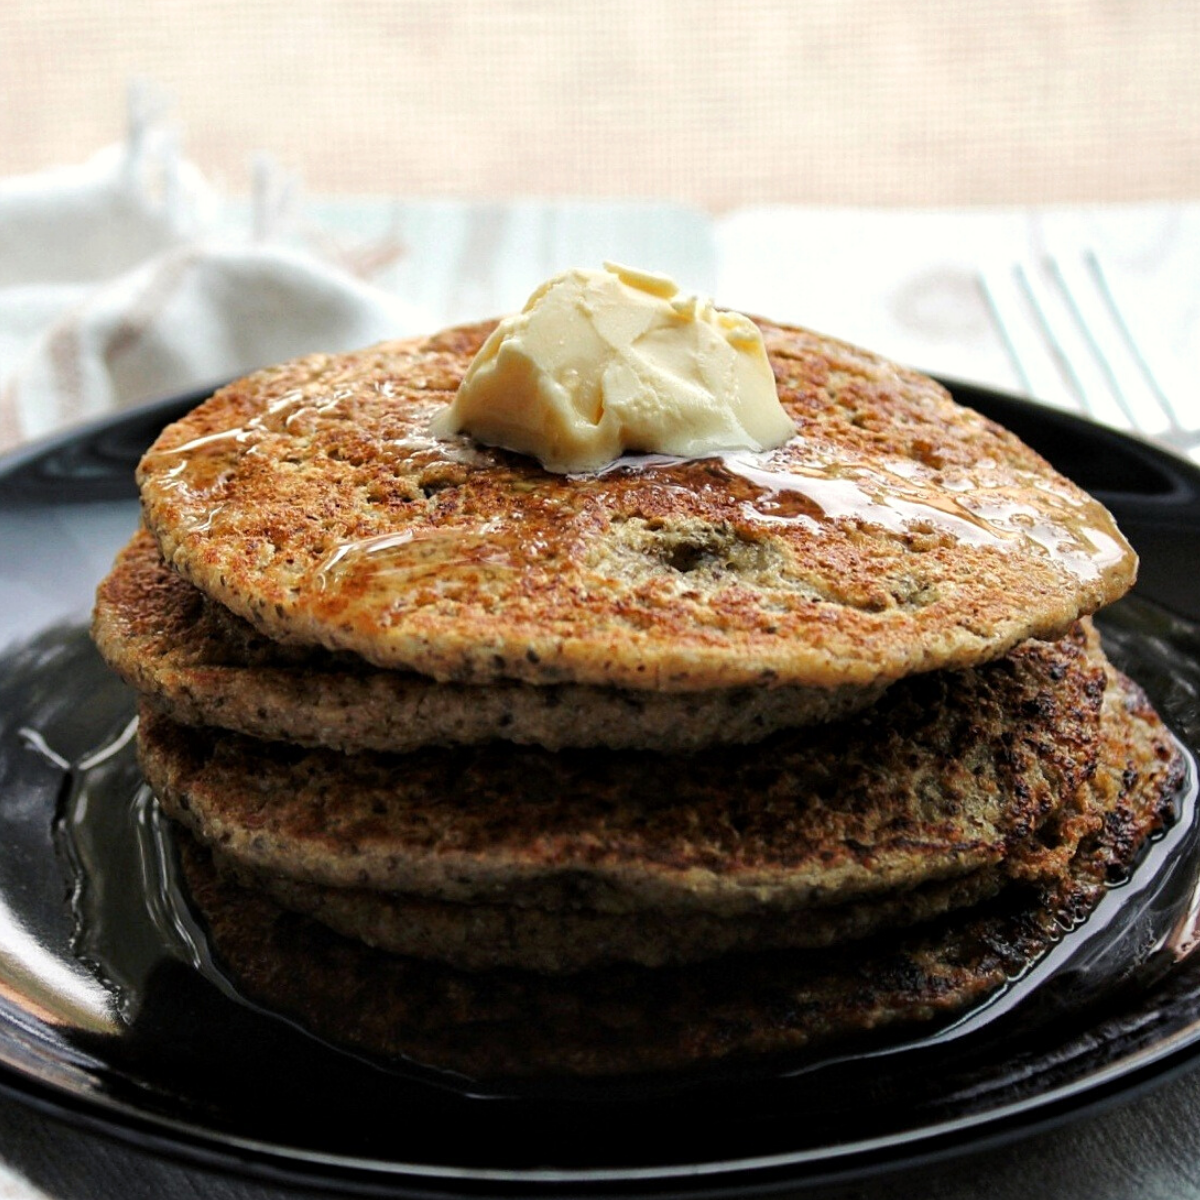 Stack of gluten-free oat bran pancakes topped with vegan butter and syrup.